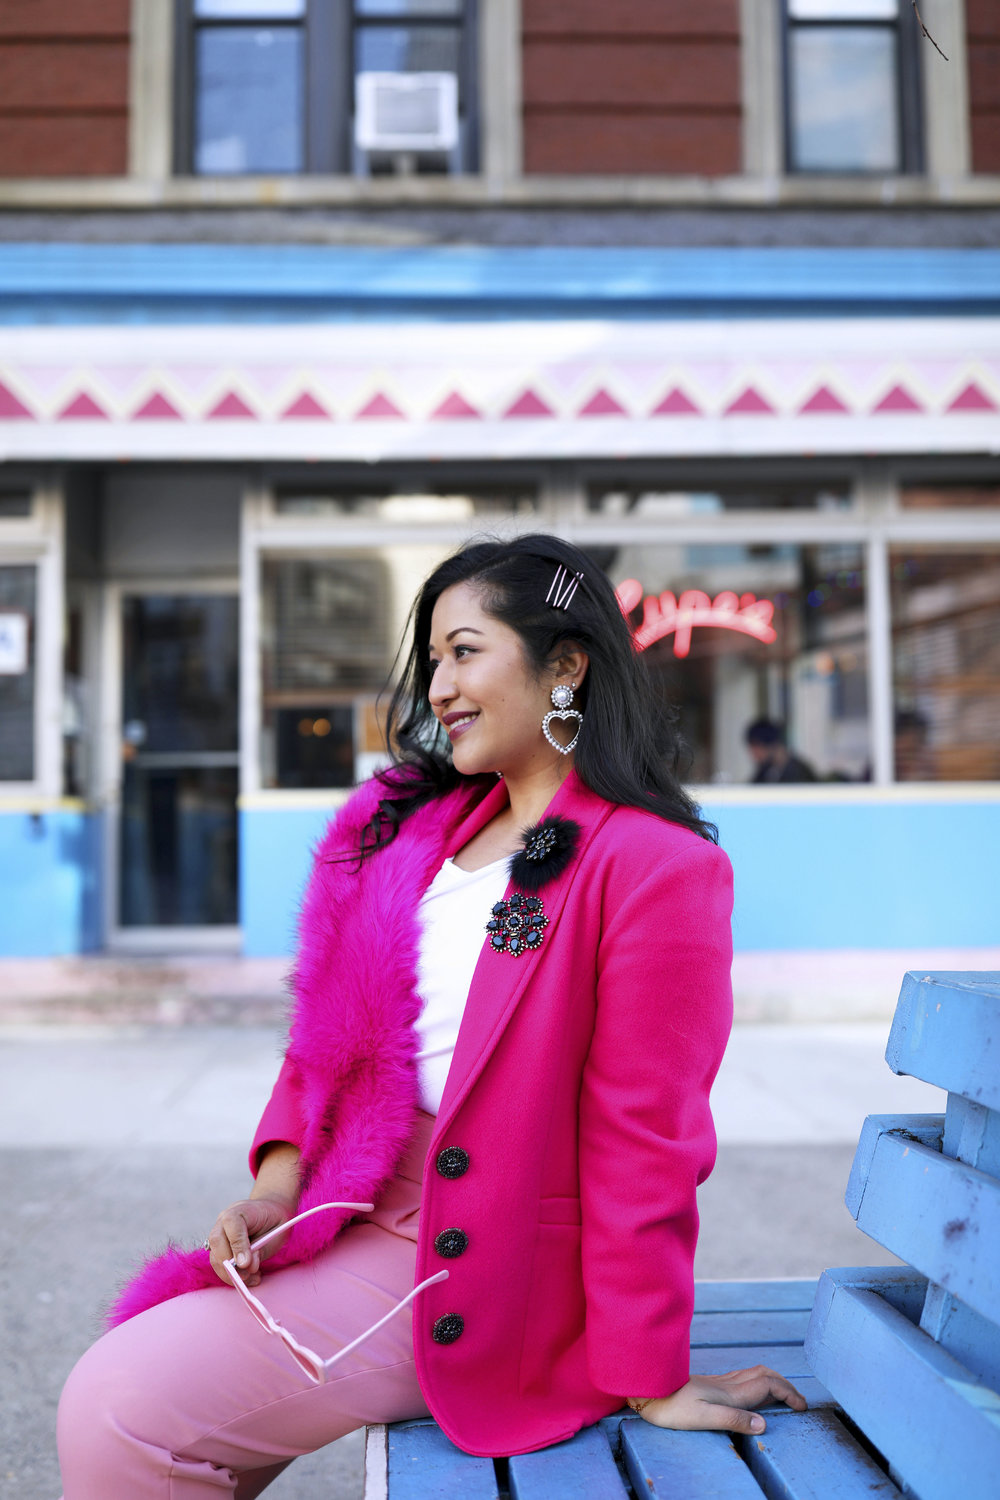 The statement pink blazer - Make an unforgettable impression.